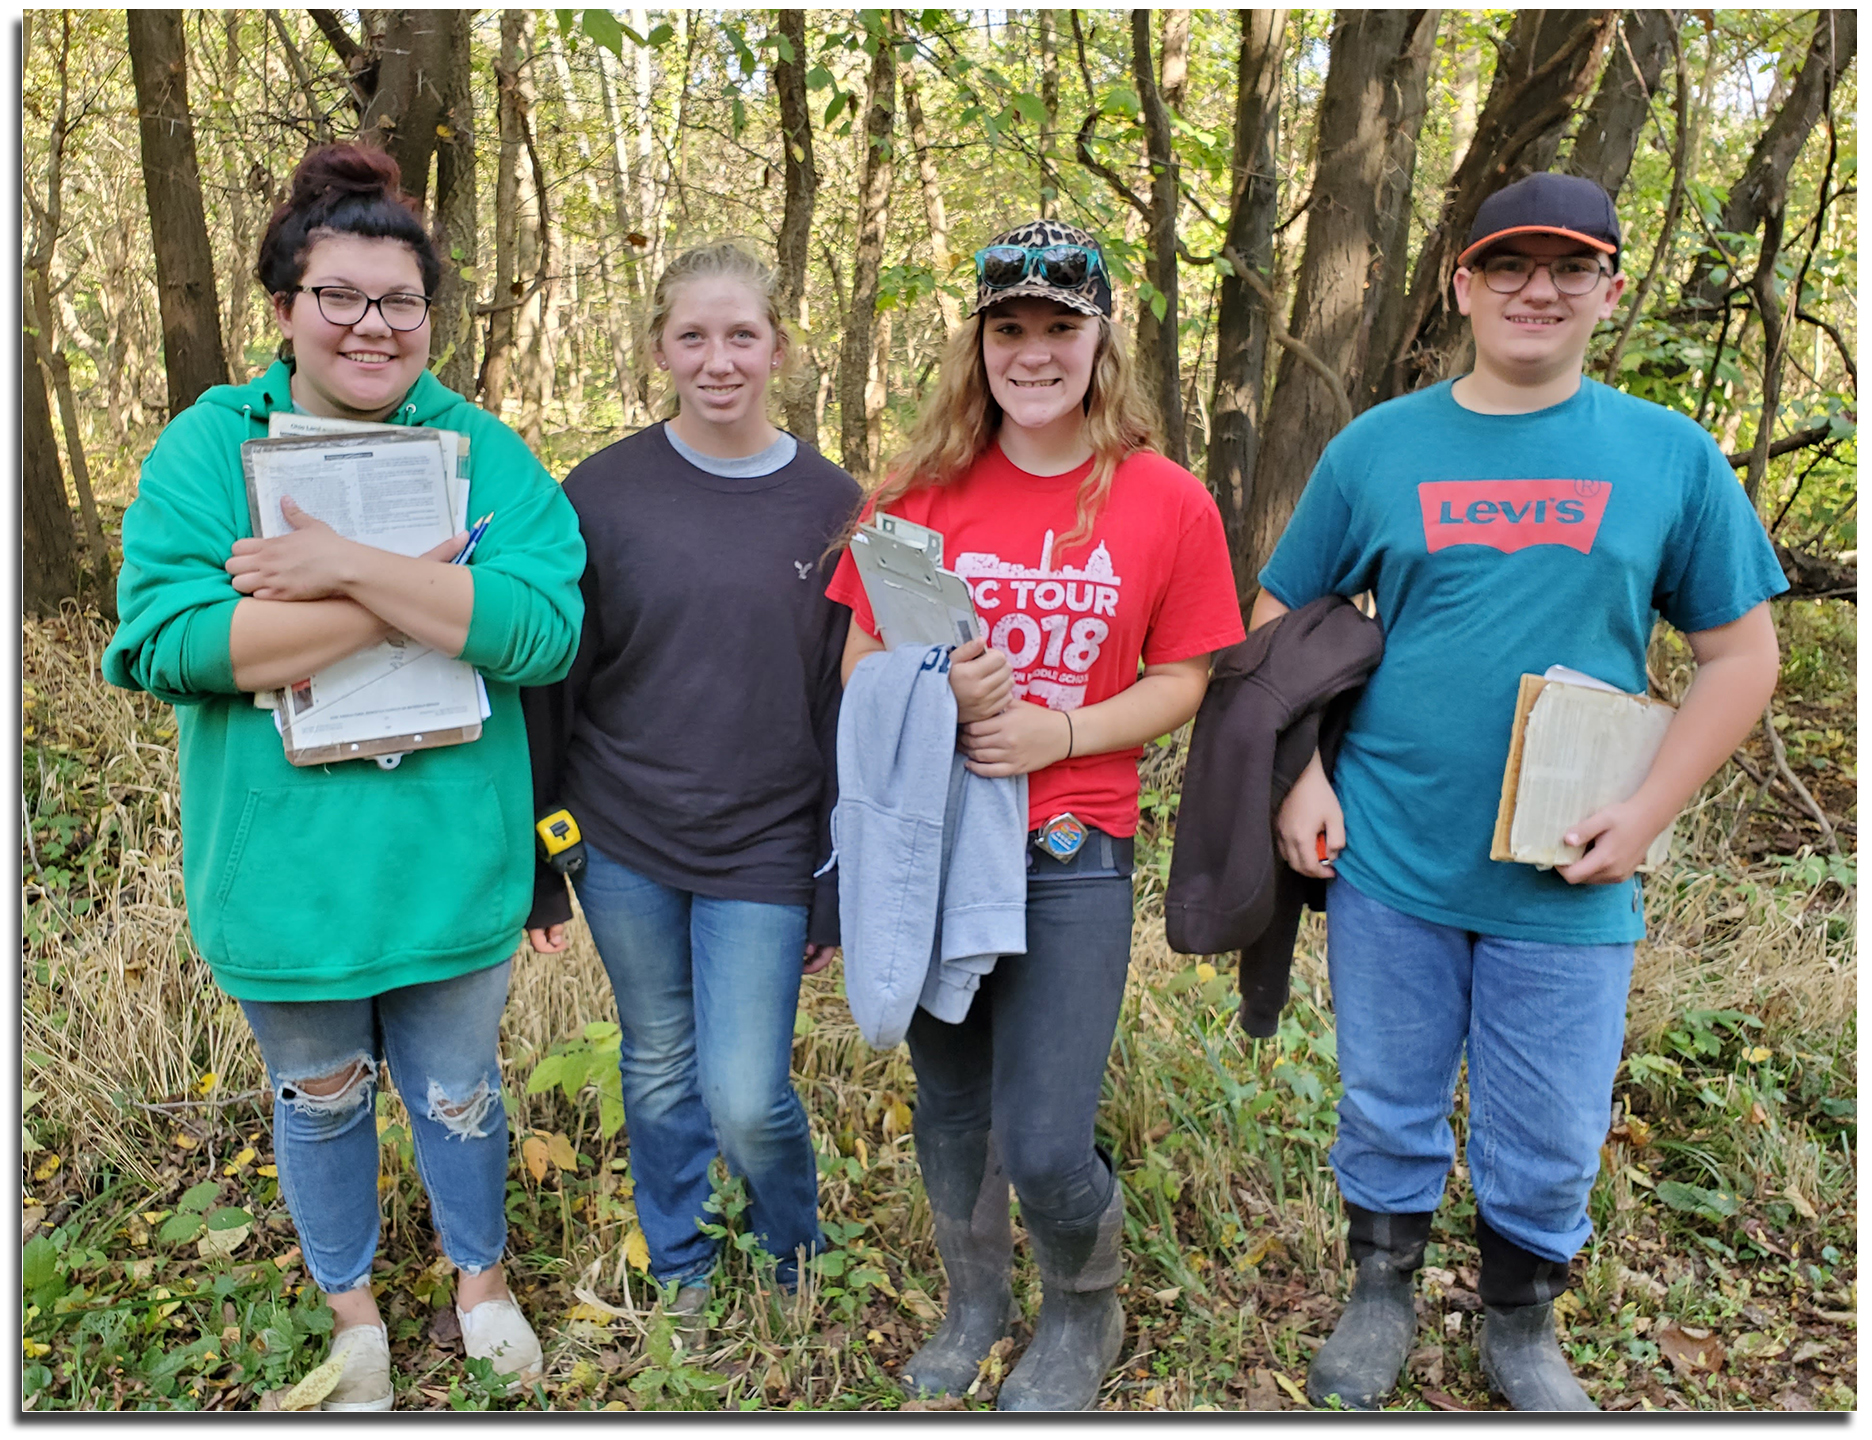 Rural Soils Team members standing with clipboards.